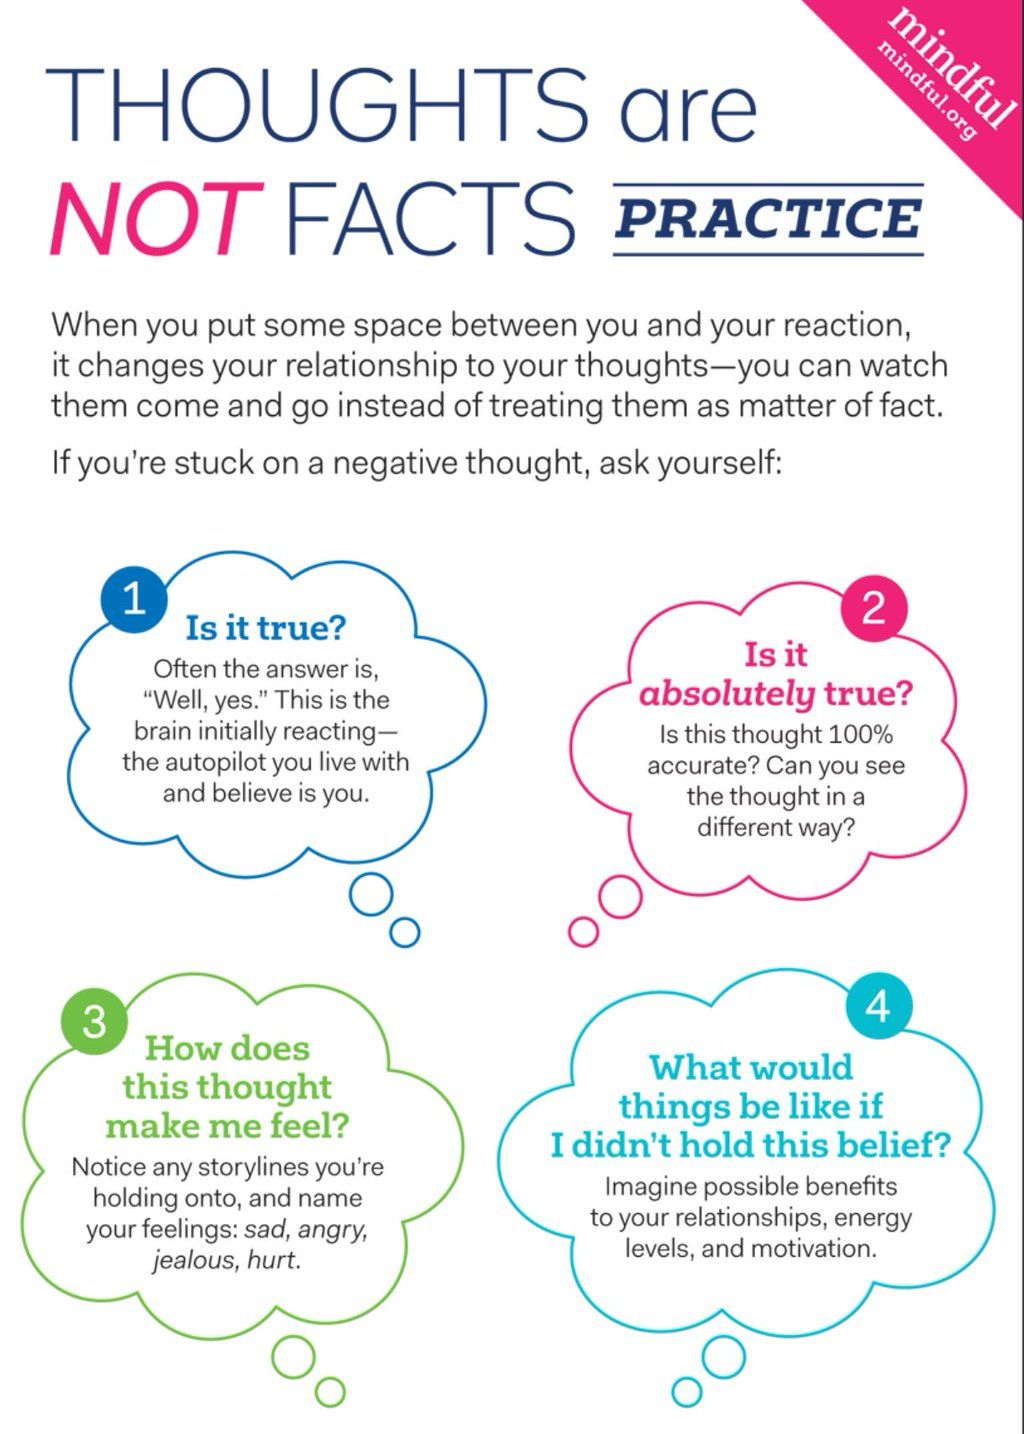 """Shamash on Twitter: """"Thoughts are not facts practice. #mindfulness https://t.co/u1YMdSXPua"""""""